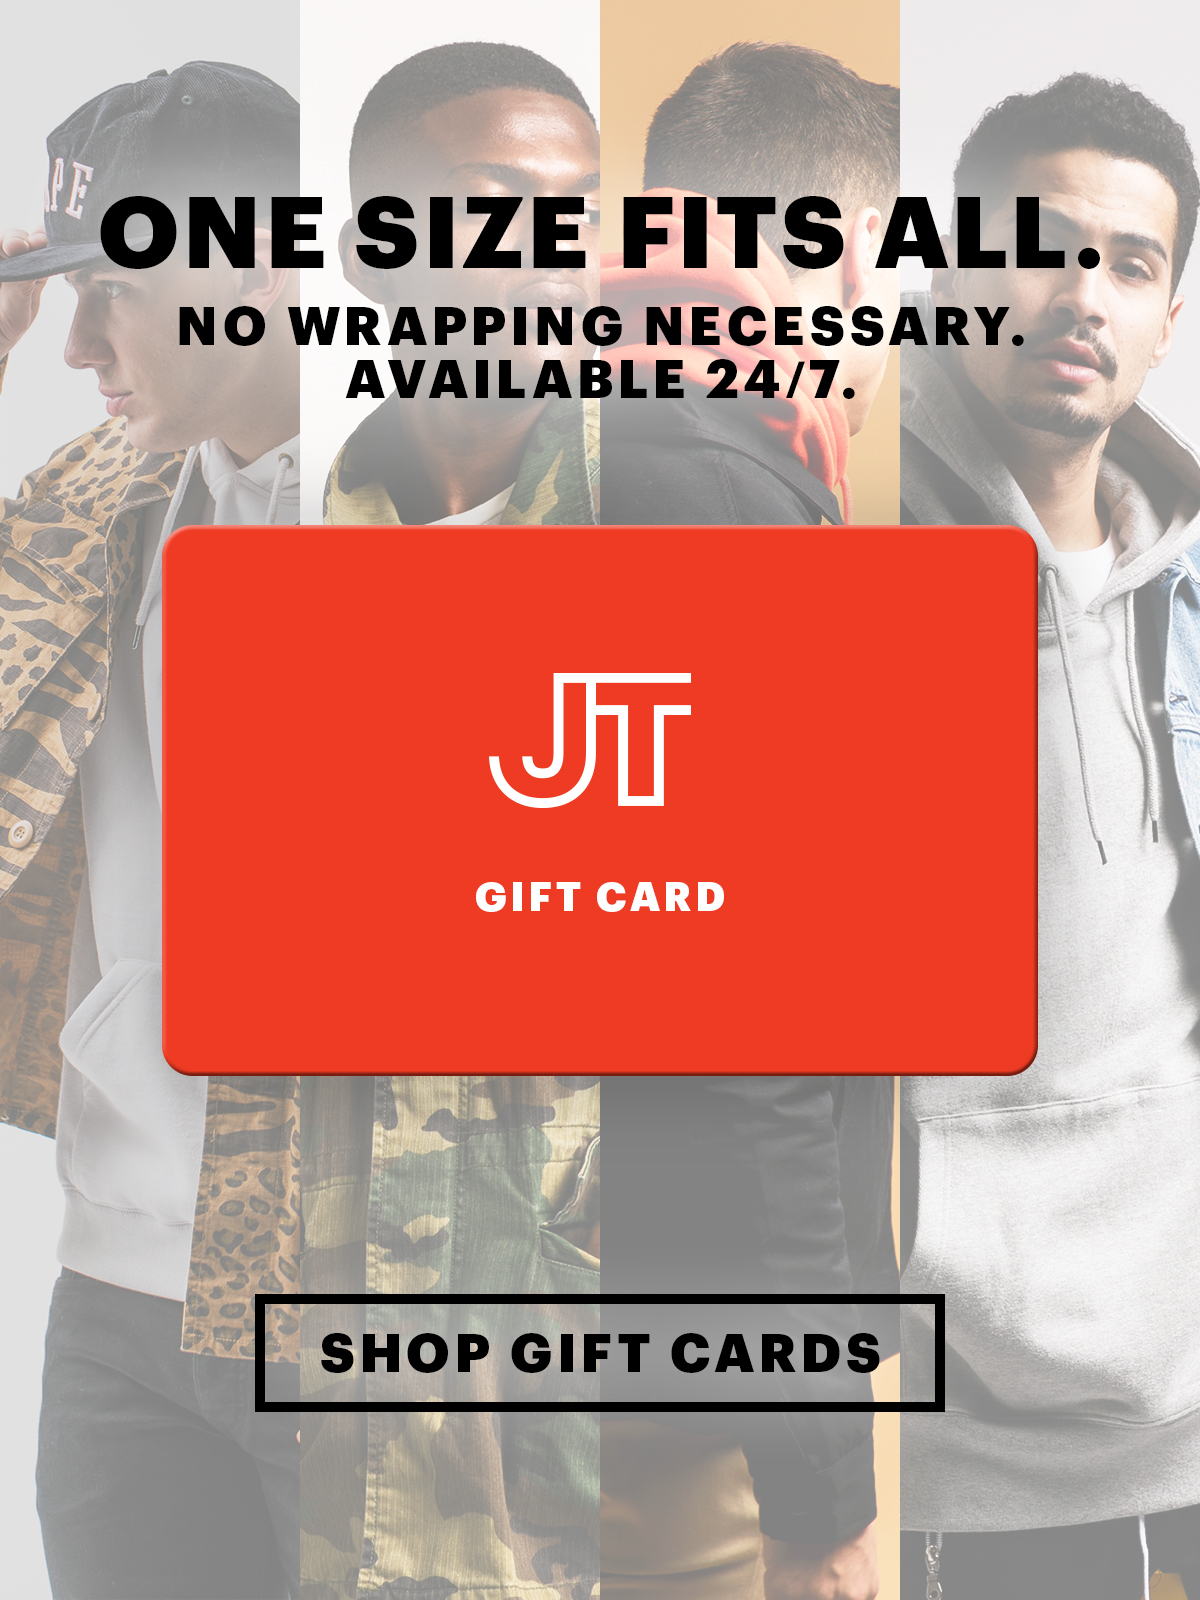 Gift Cards! Always The Perfect Size